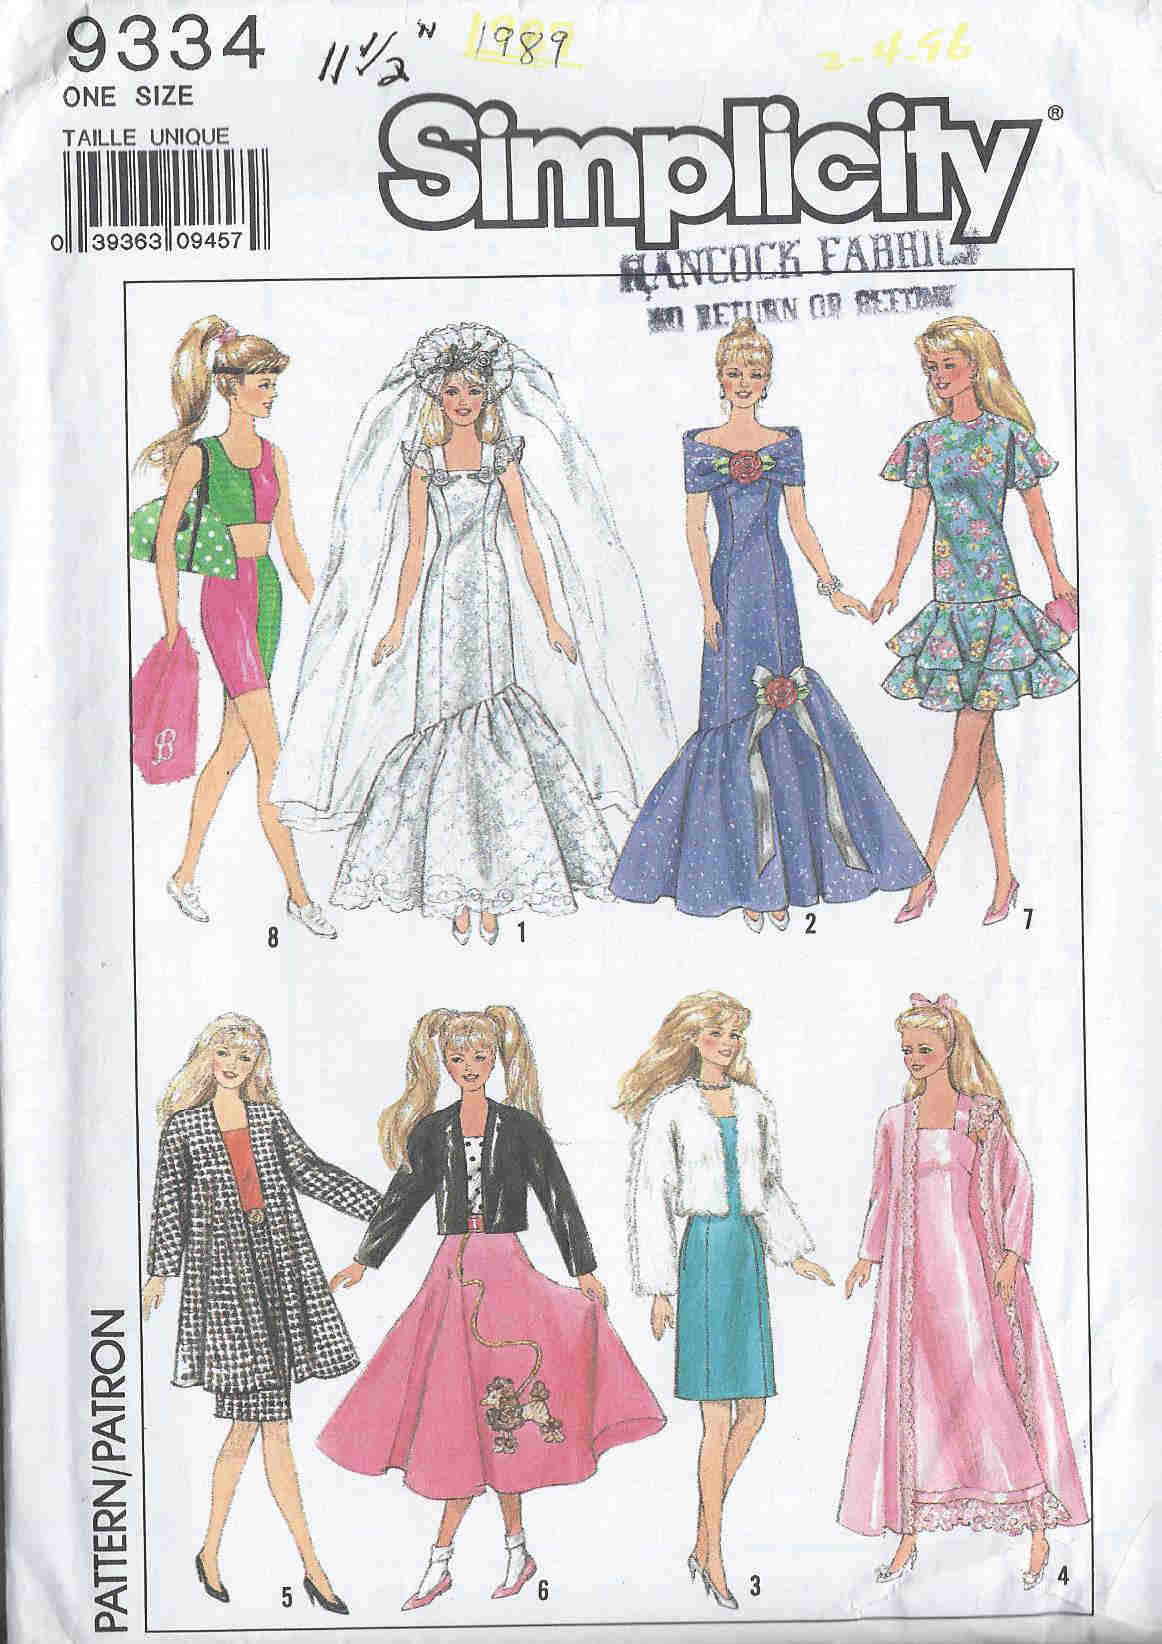 Fashion Doll wedding dress evening gown dress nightgown sewing pattern